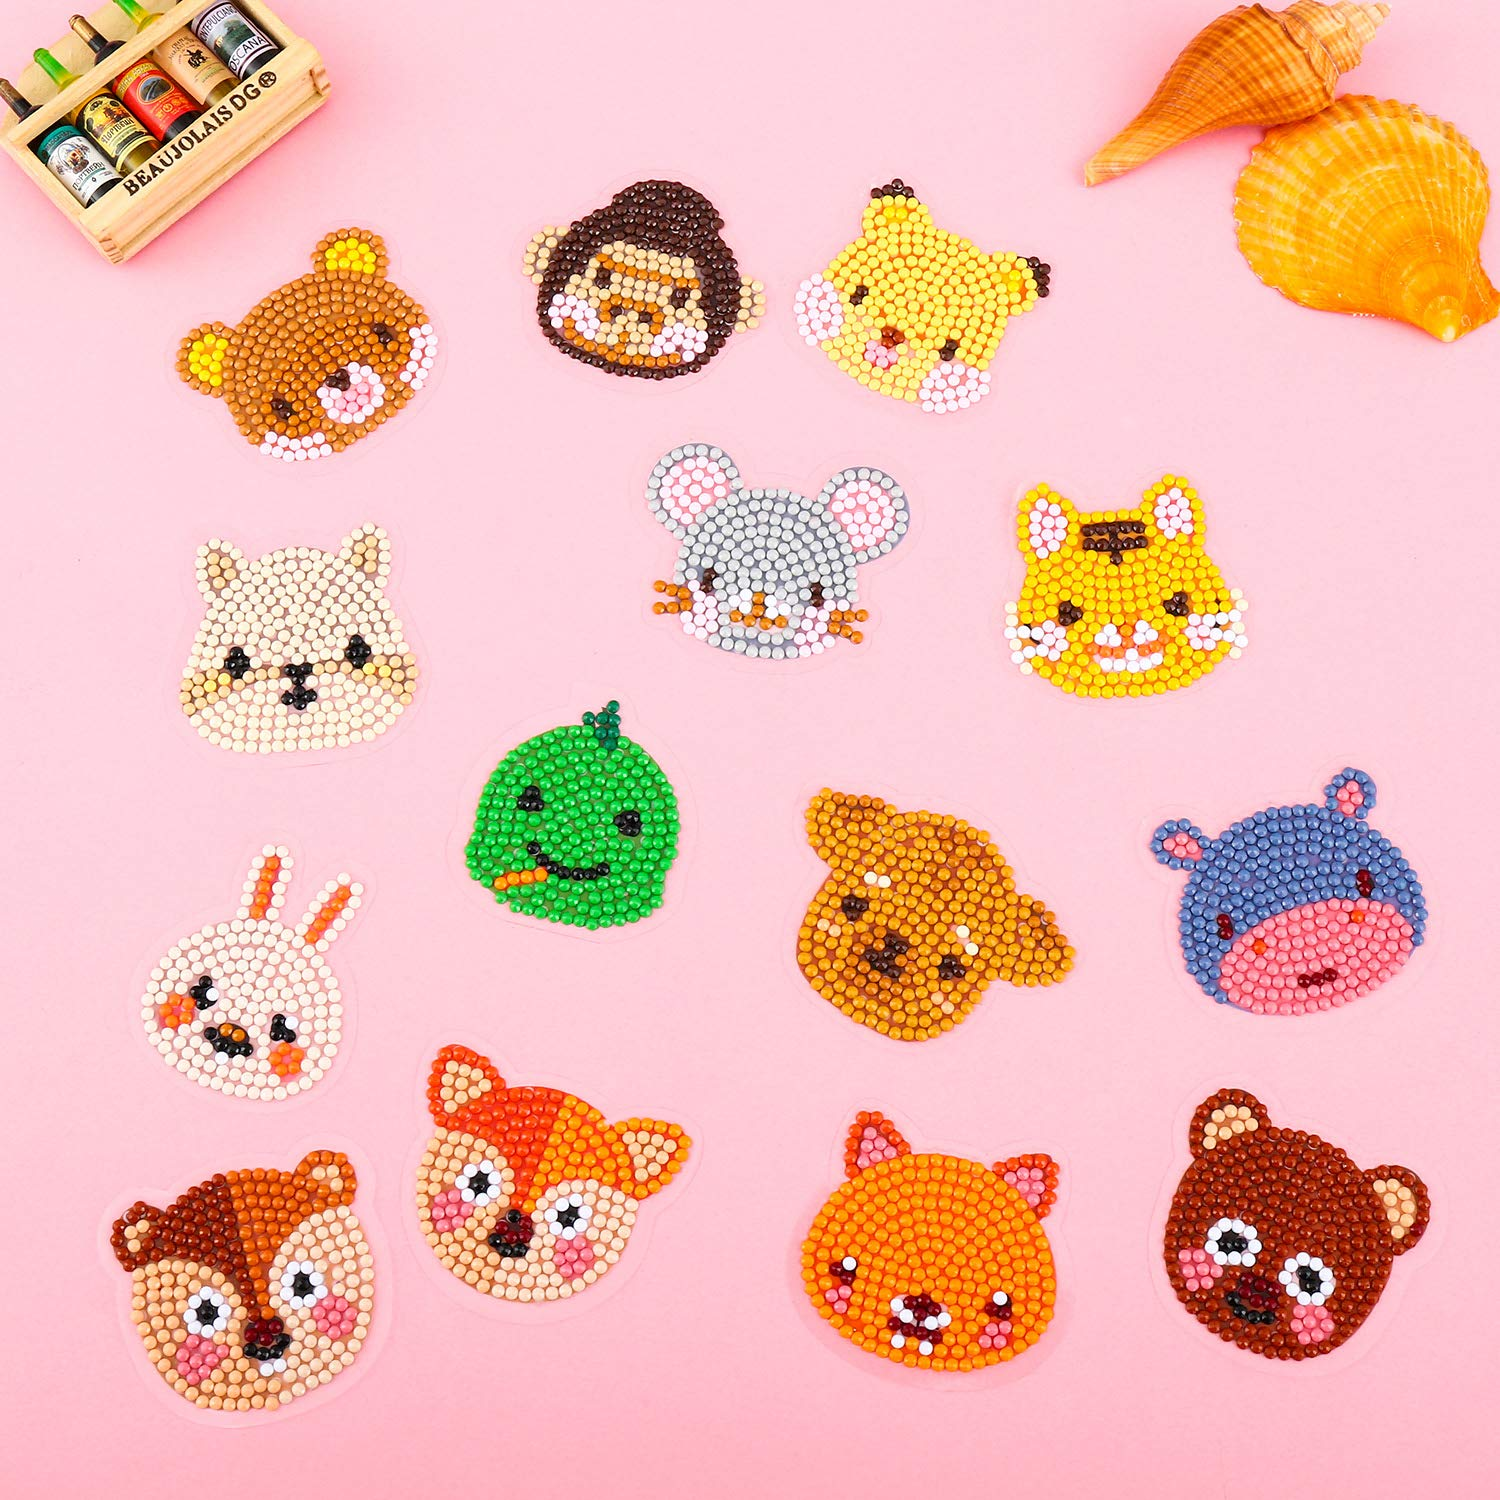 Outus 36 Pieces 5D Diamond Painting Stickers DIY Paint Stickers Cute Animal Diamond Painting Stickers for Adult Beginners Kids Handmade Art Crafts